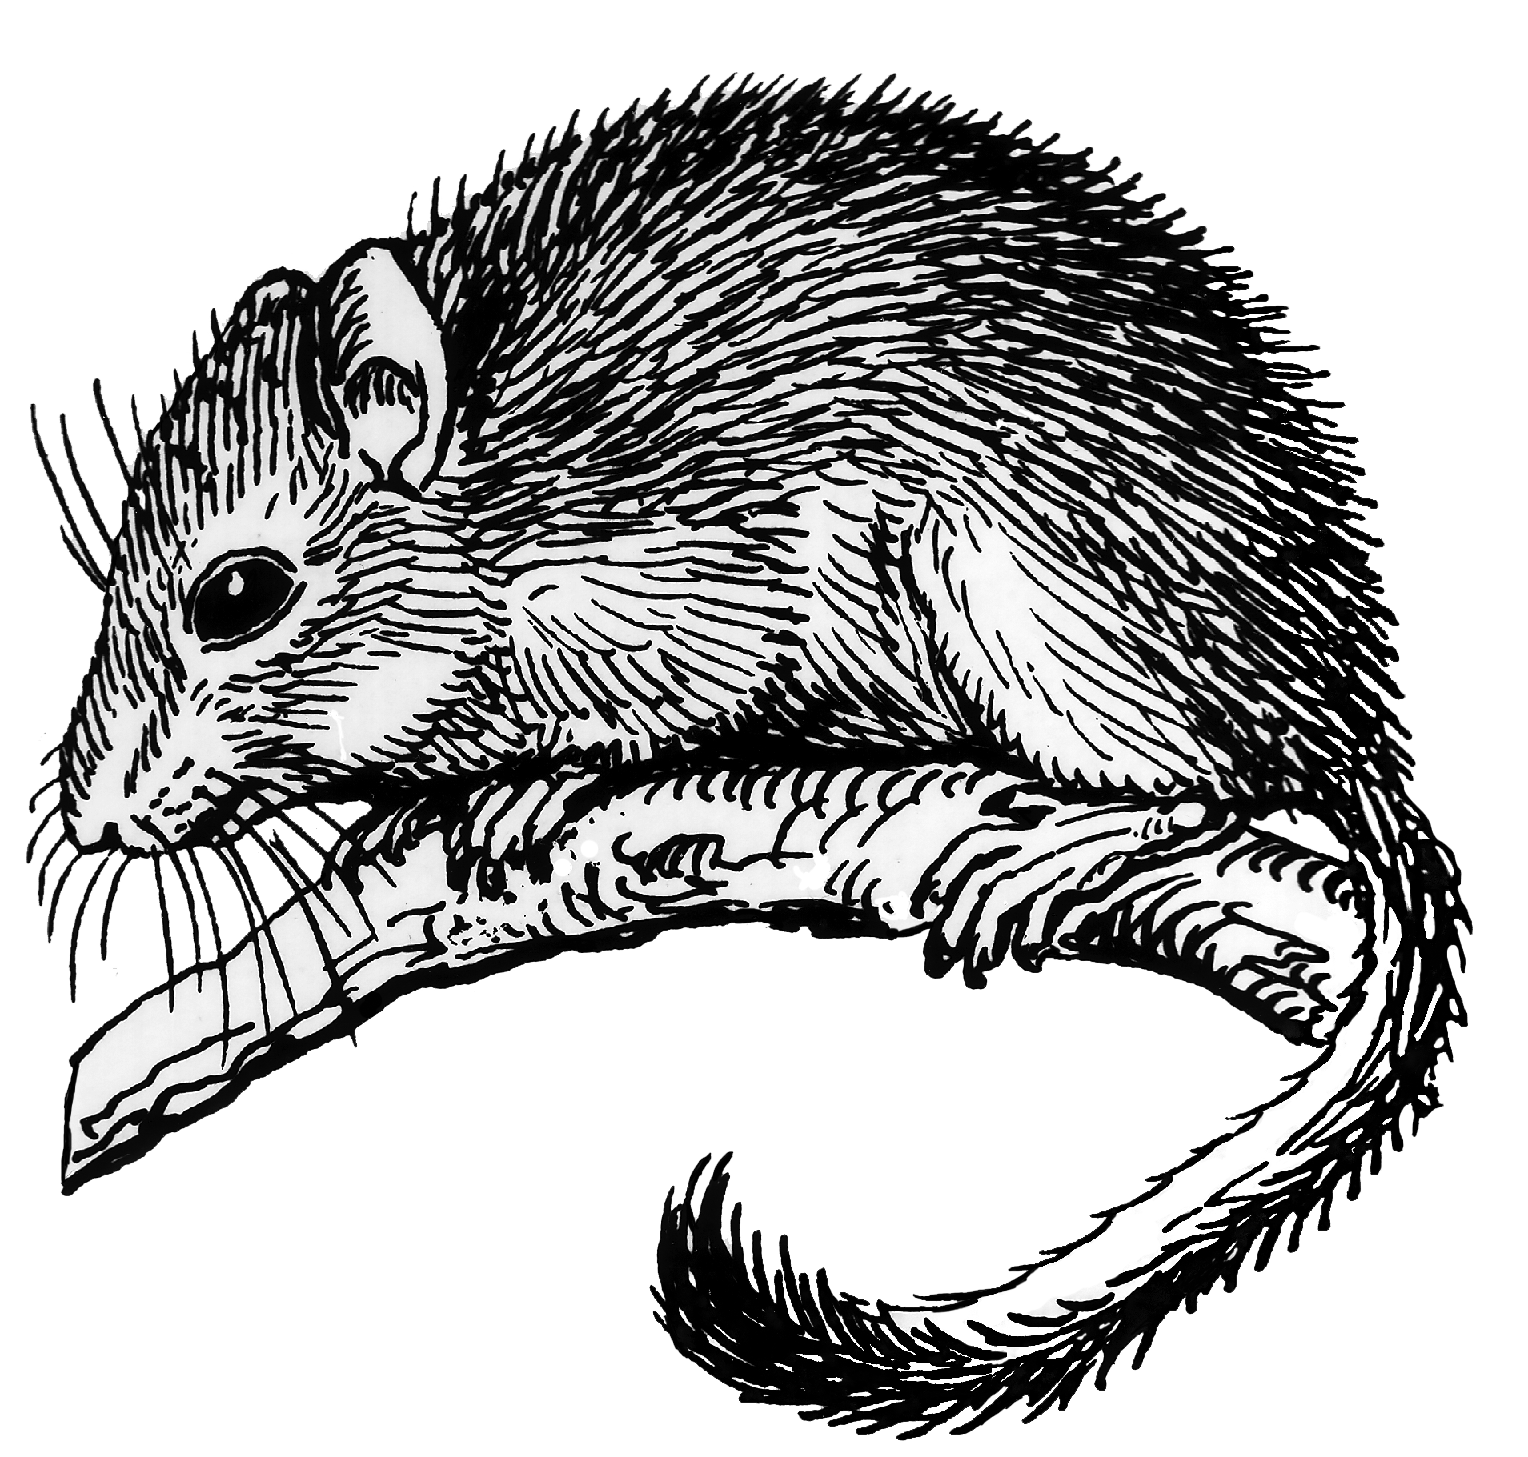 File:Dormouse (PSF).png - Wikimedia Commons